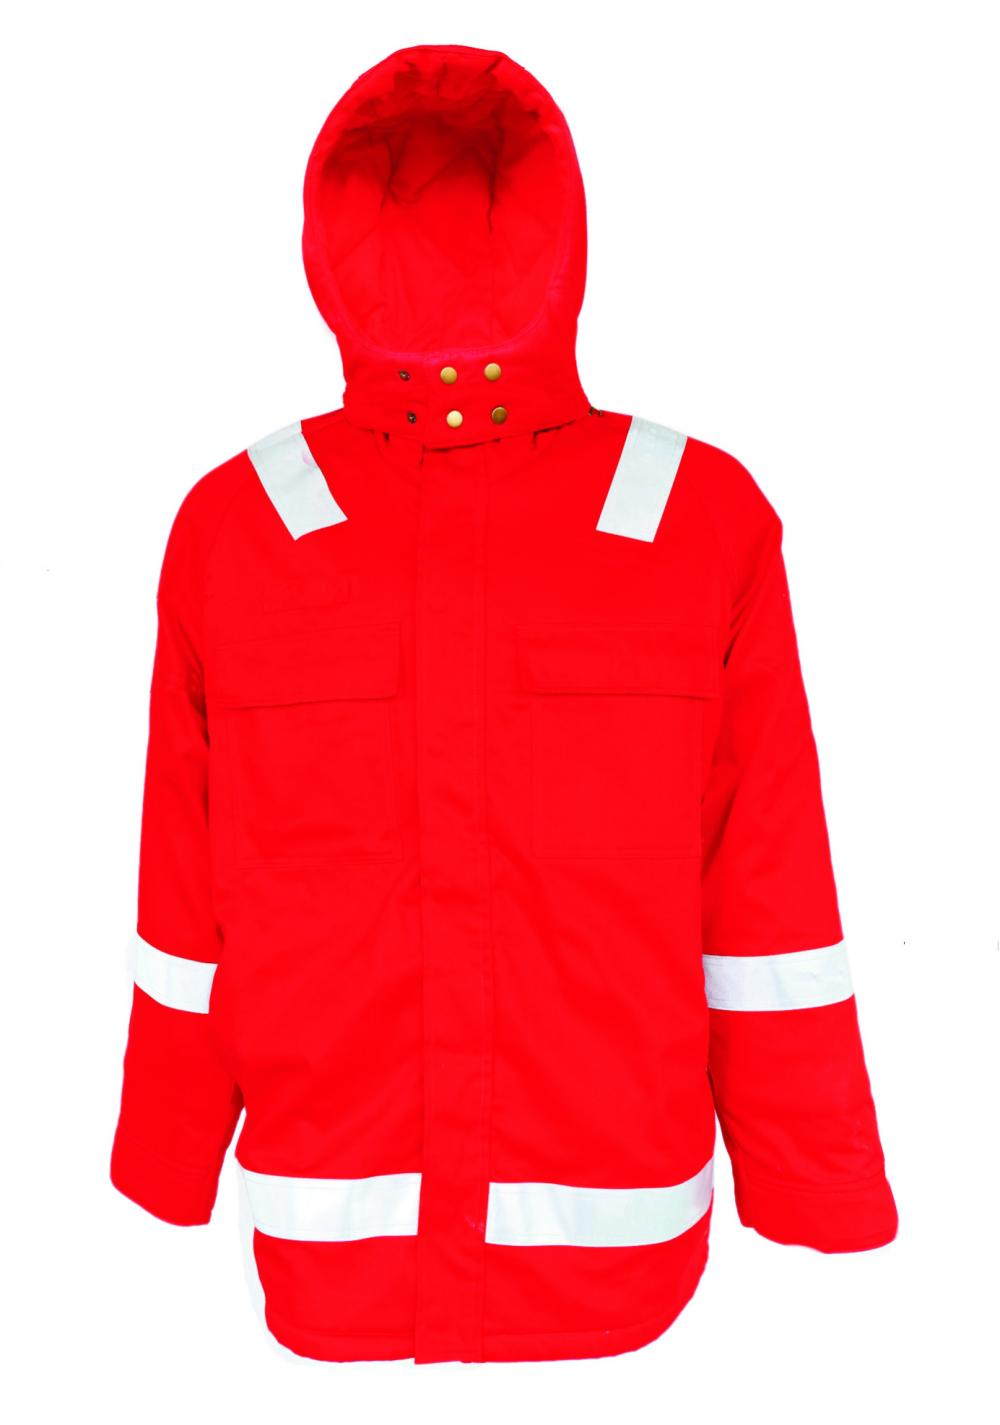 Qinter Fr Antistatic Jacket